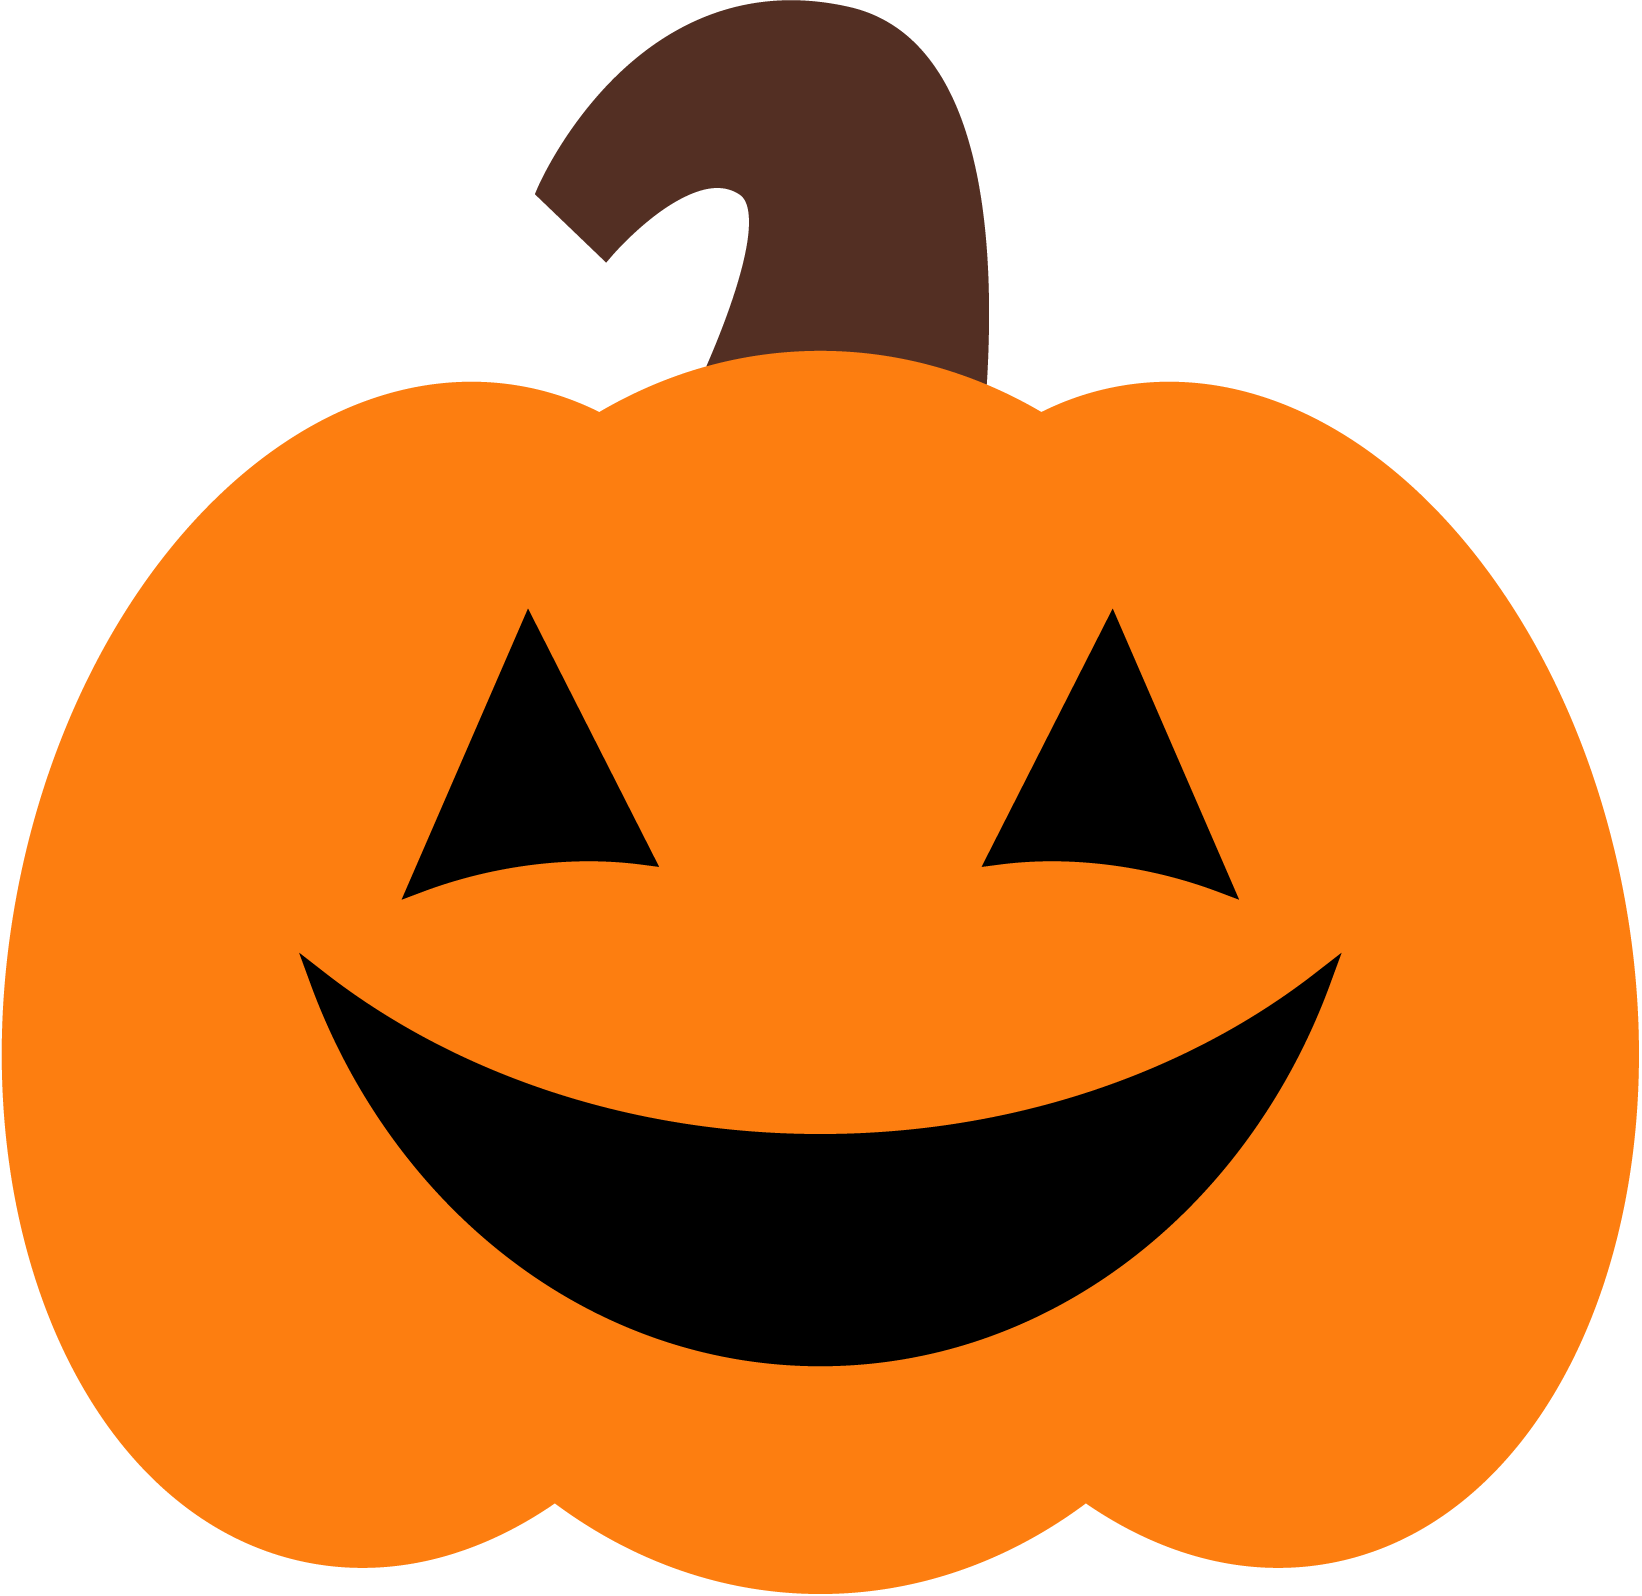 Pumpkin clipart Halloween free revidevi wordpress clipart